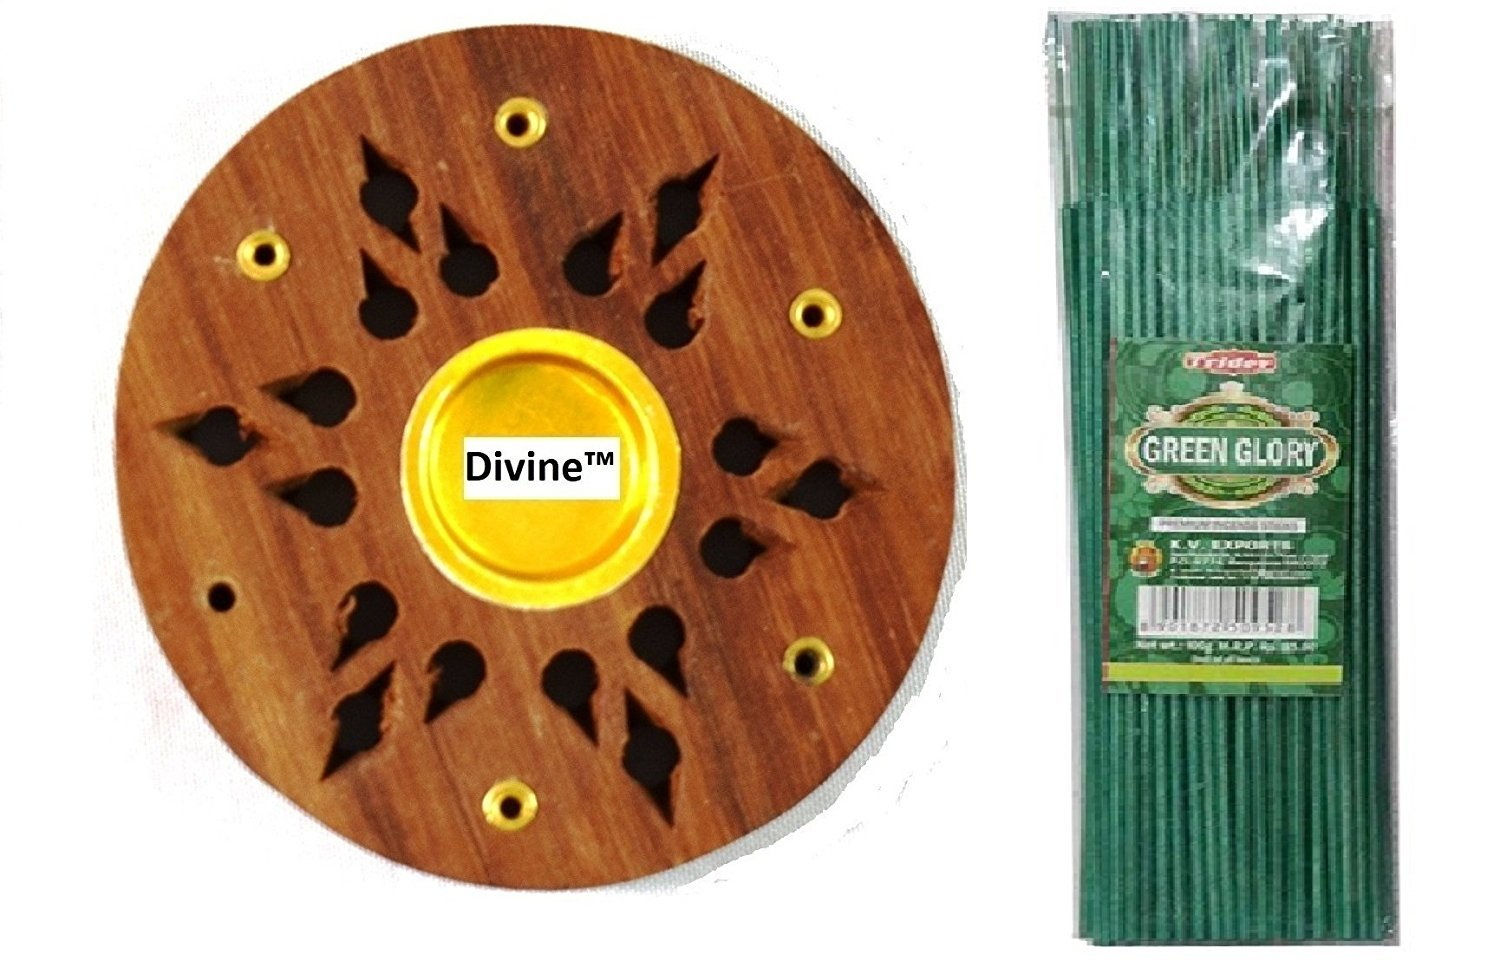 Divine Incense Holder Free With Tridev Green Glory Metallic Coloured Fragranced Premium Incense Sticks Agarbatti 1 KG Pack | 10 Packs of 100 Grams | Export Quality by Divine